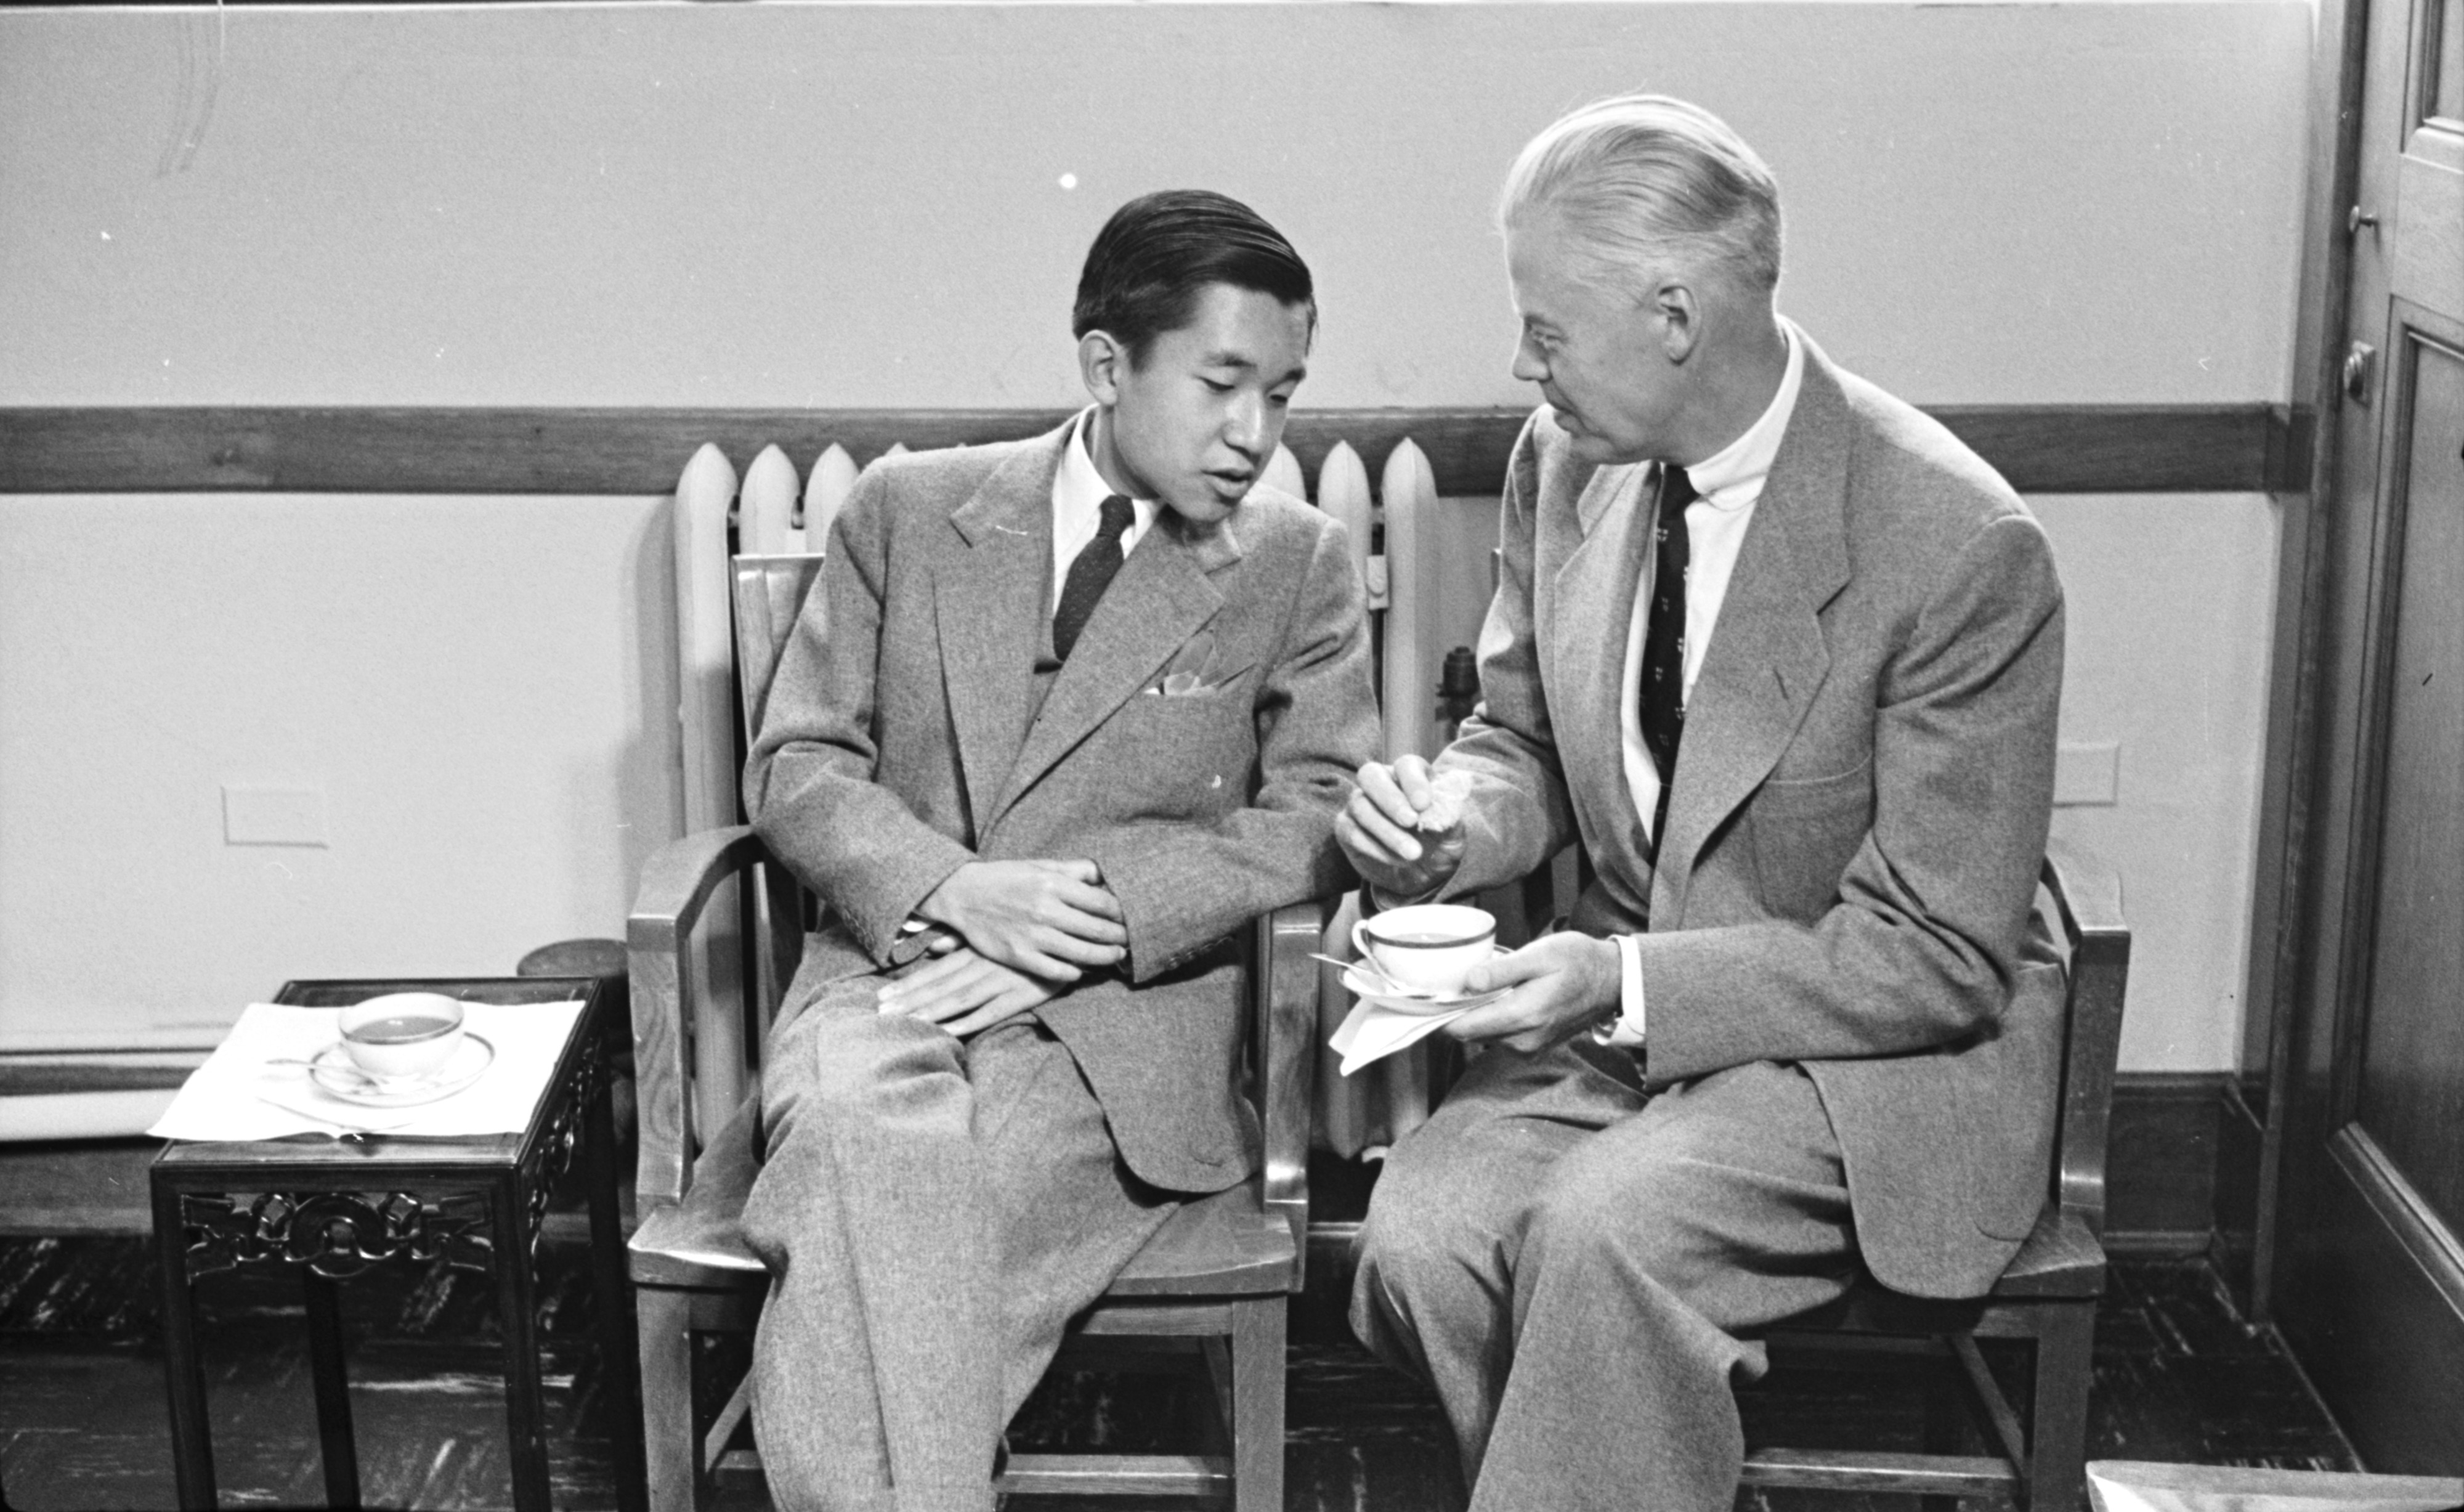 Image from Japanese Crown Prince Akihito Visits the University of Michigan, September 1953